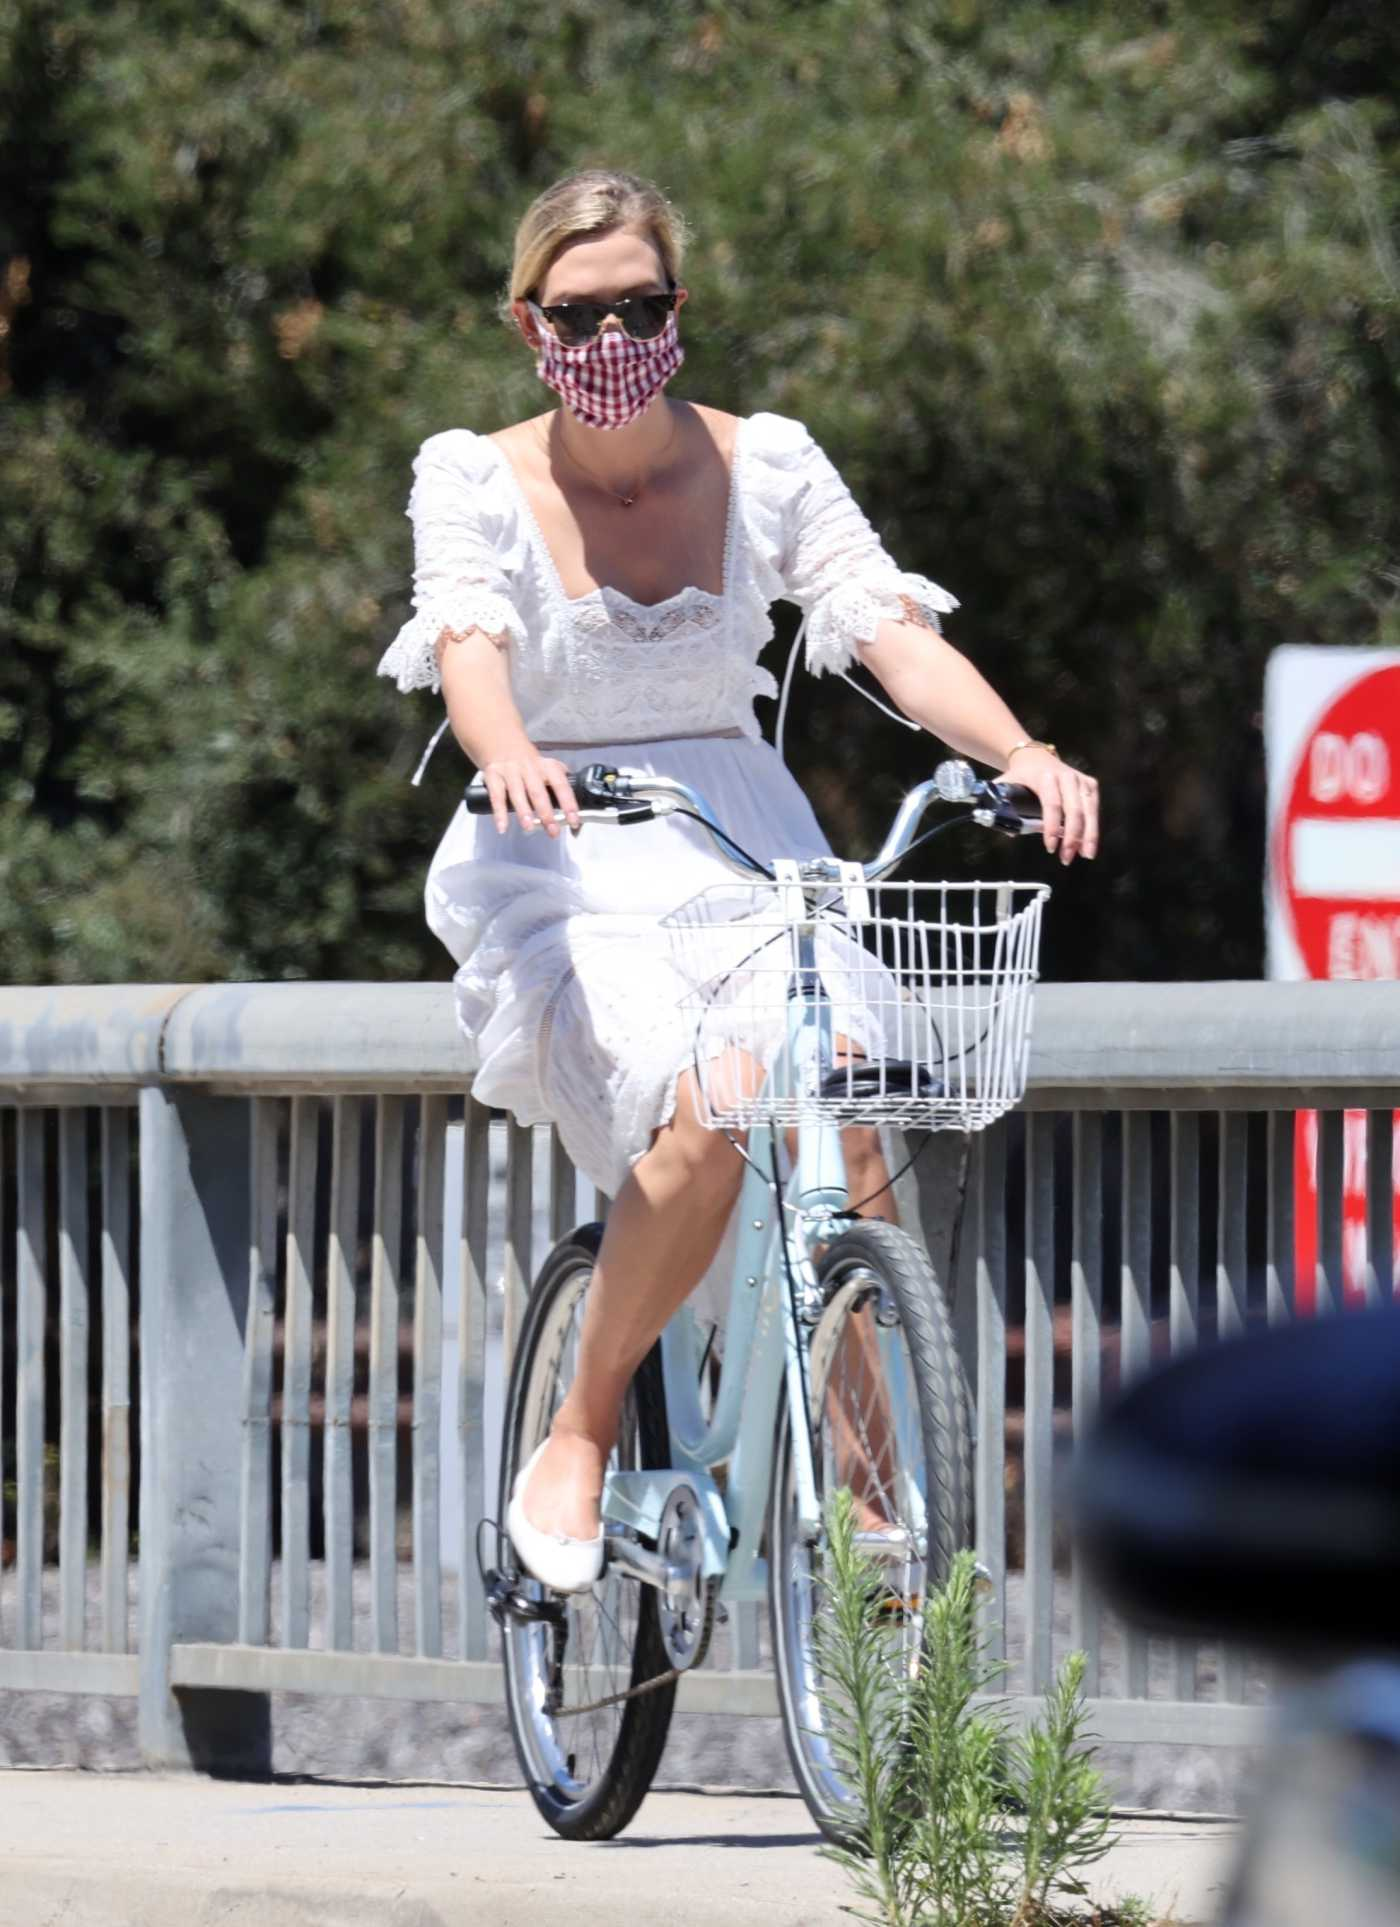 Karlie Kloss in a White Dress Does a Bike Ride in Santa Monica 07/18/2020